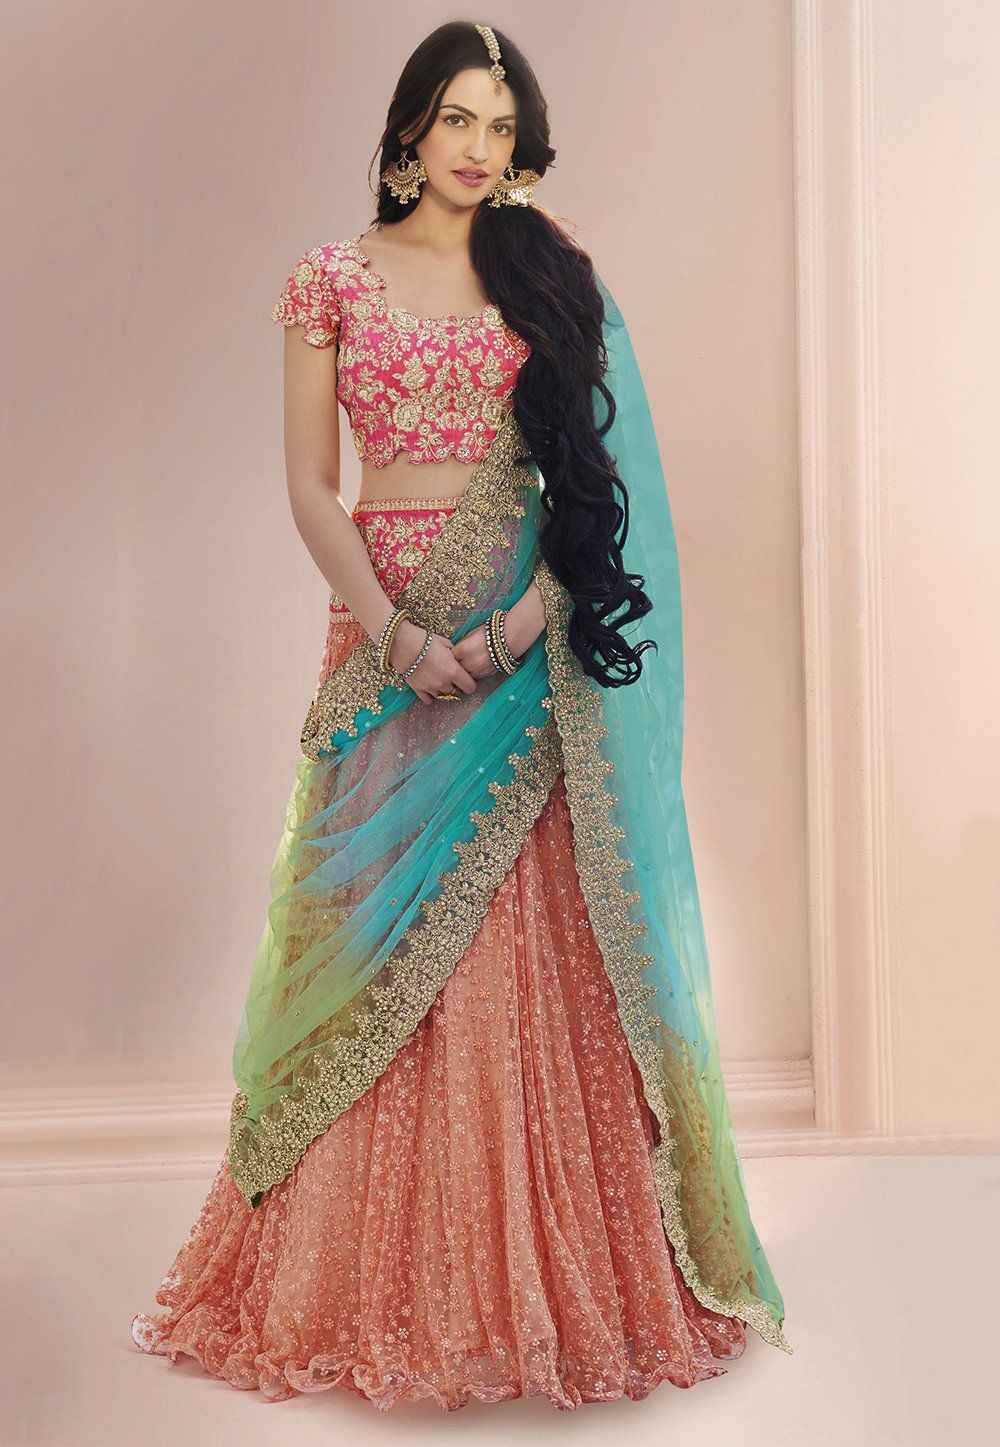 Honey Bollywood Designer Pink Lengha Semi Stitch Uk Clothing, Shoes & Accessories Other Women's Clothing